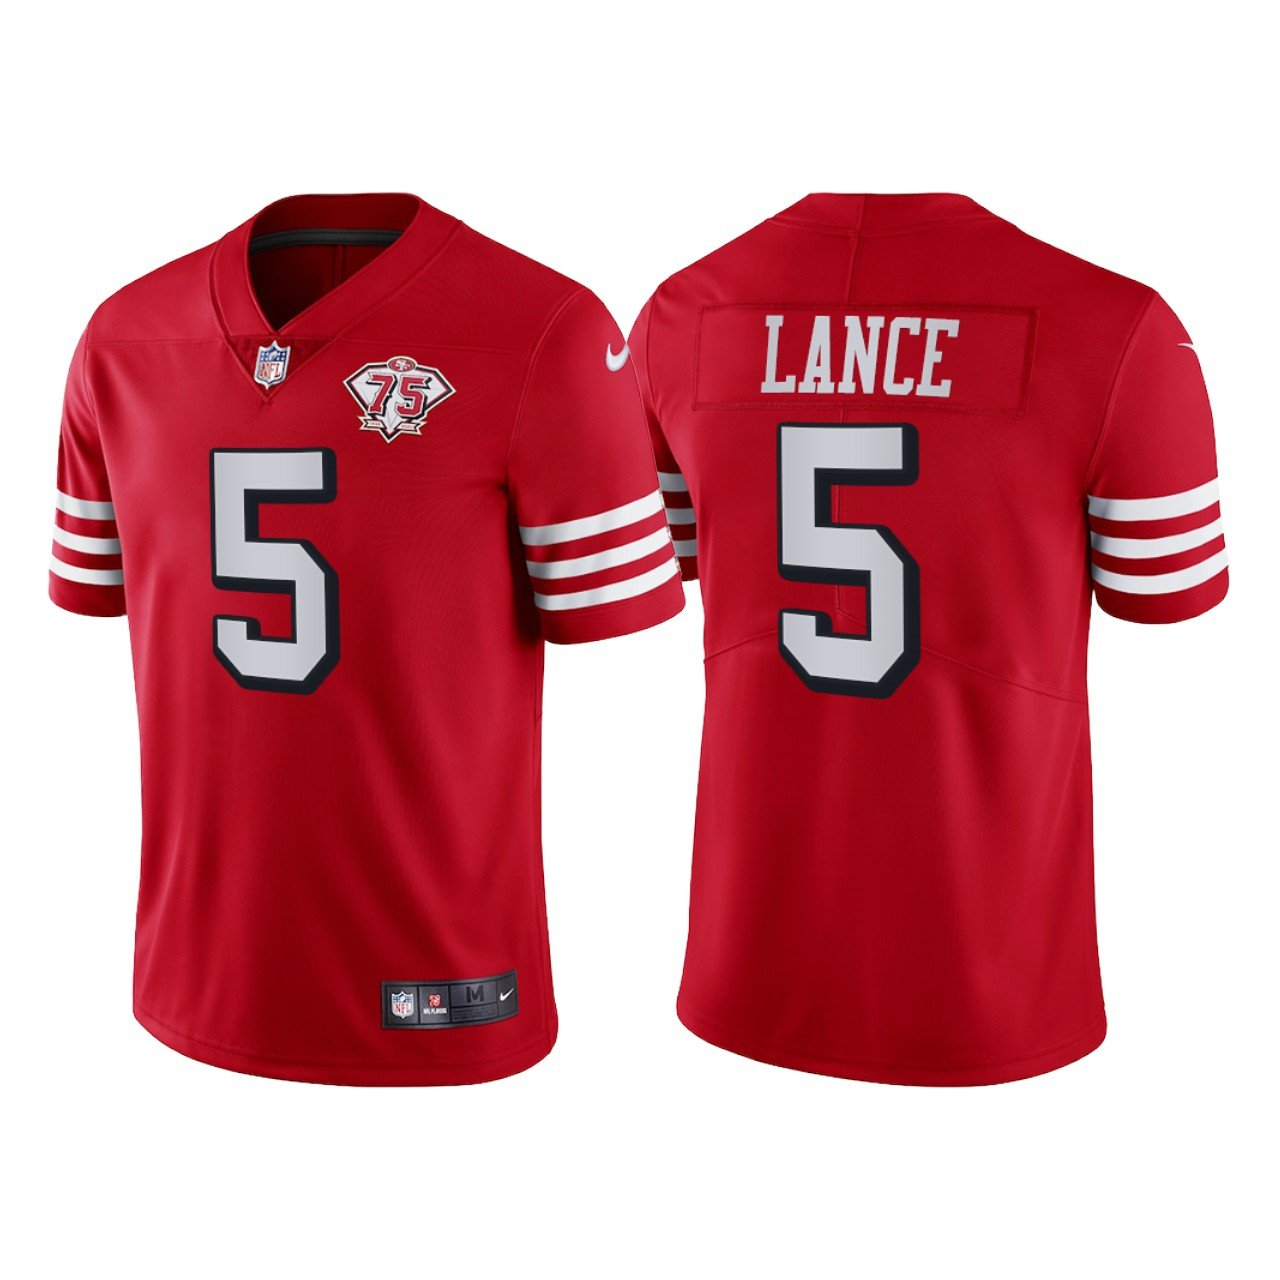 Men's #5 Trey Lance San Francisco 49ers Red Throwback Limited Jersey 75th Anniversary Stitched